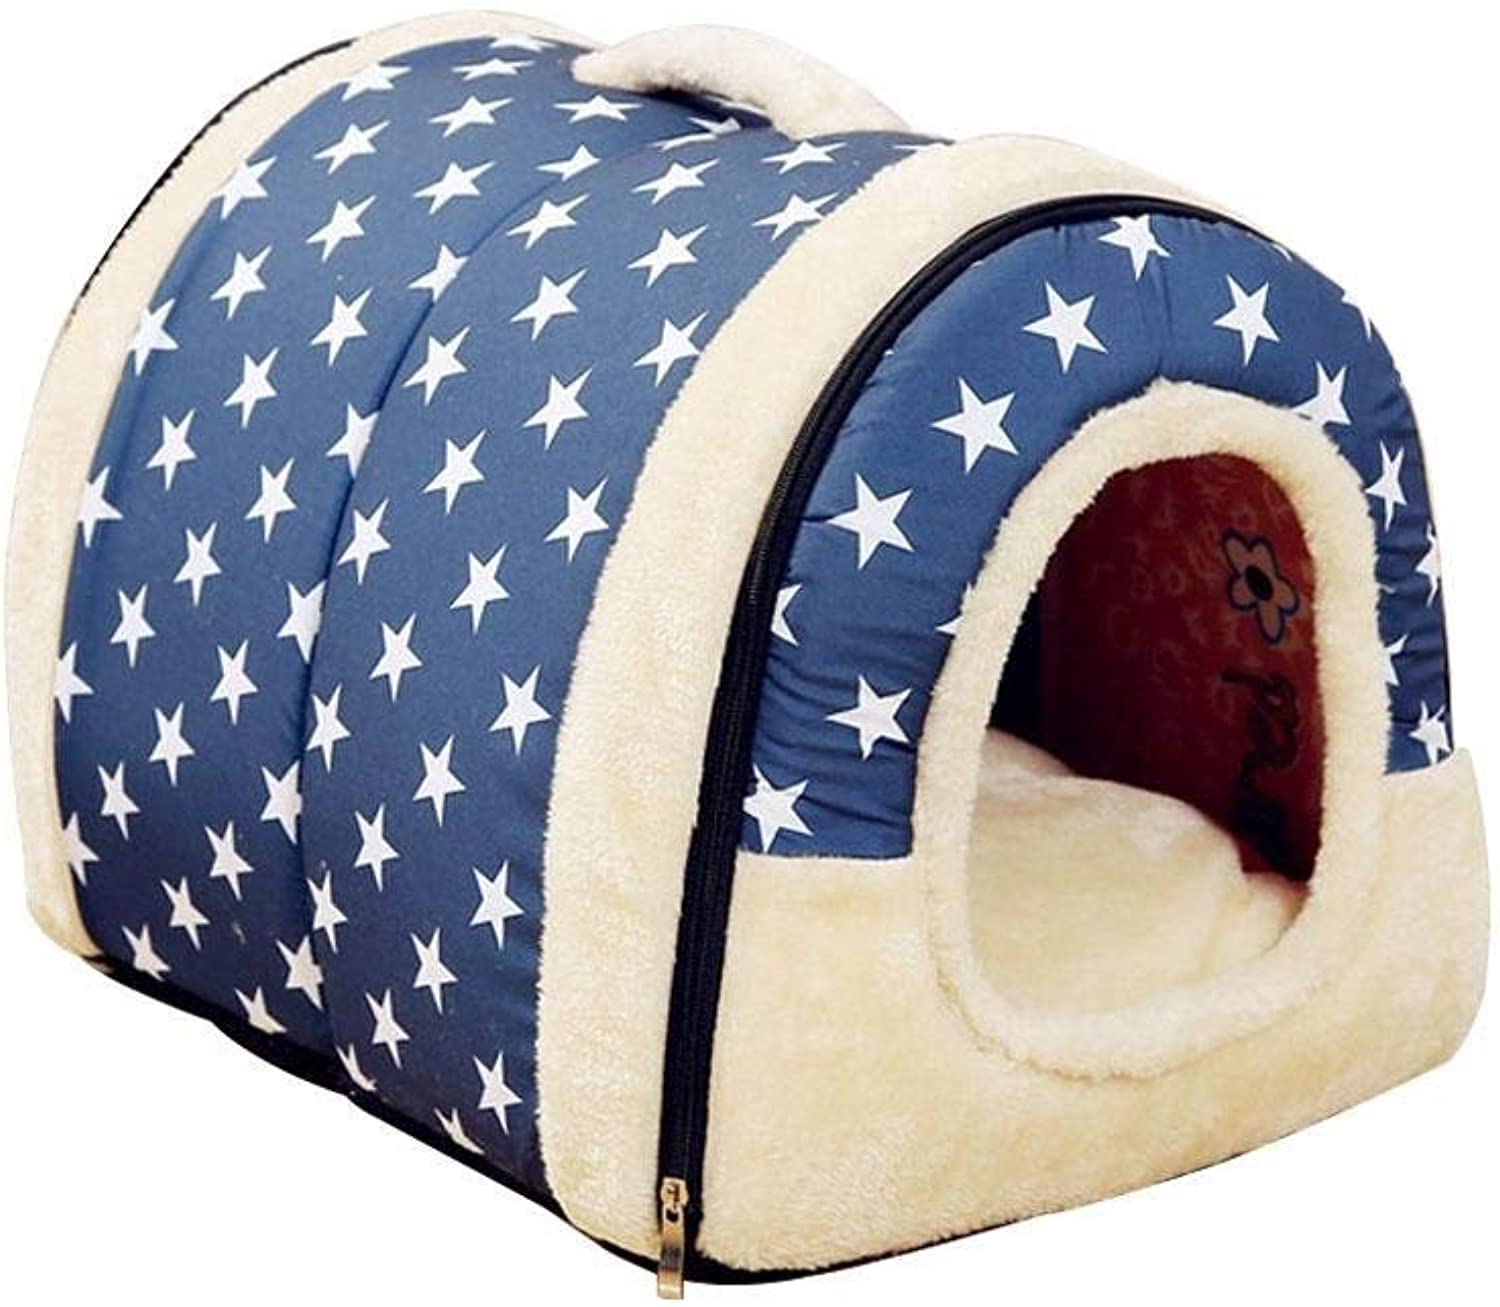 CHONGWFS Indoor Outdoor Pet Home Dog Beds Soft Warm Star Pattern 2 in 1 Pet House and Sofa,Dog Cat Bed Foldable Winter Soft Cozy Sleeping Bag Mat (color   C, Size   L)